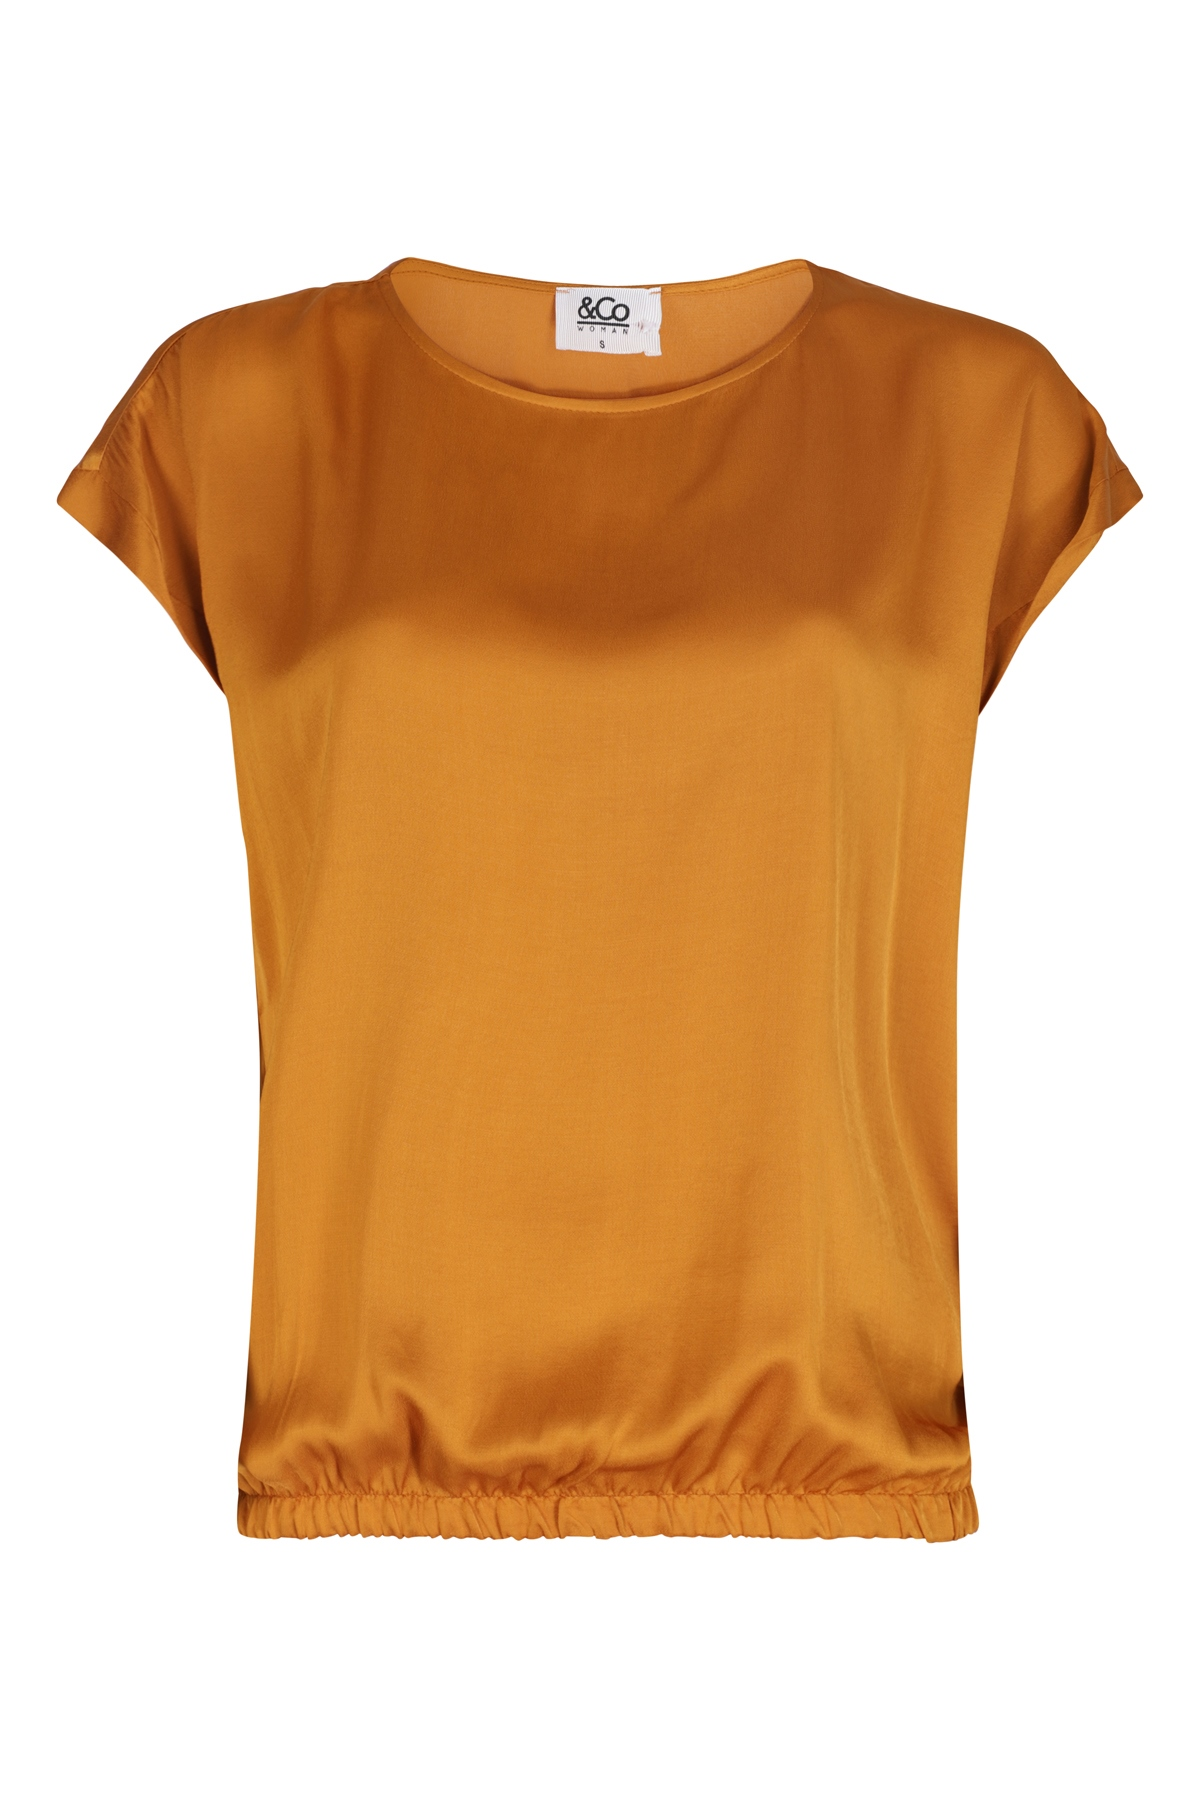 &Co Woman Shirt - Top Oranje Billy